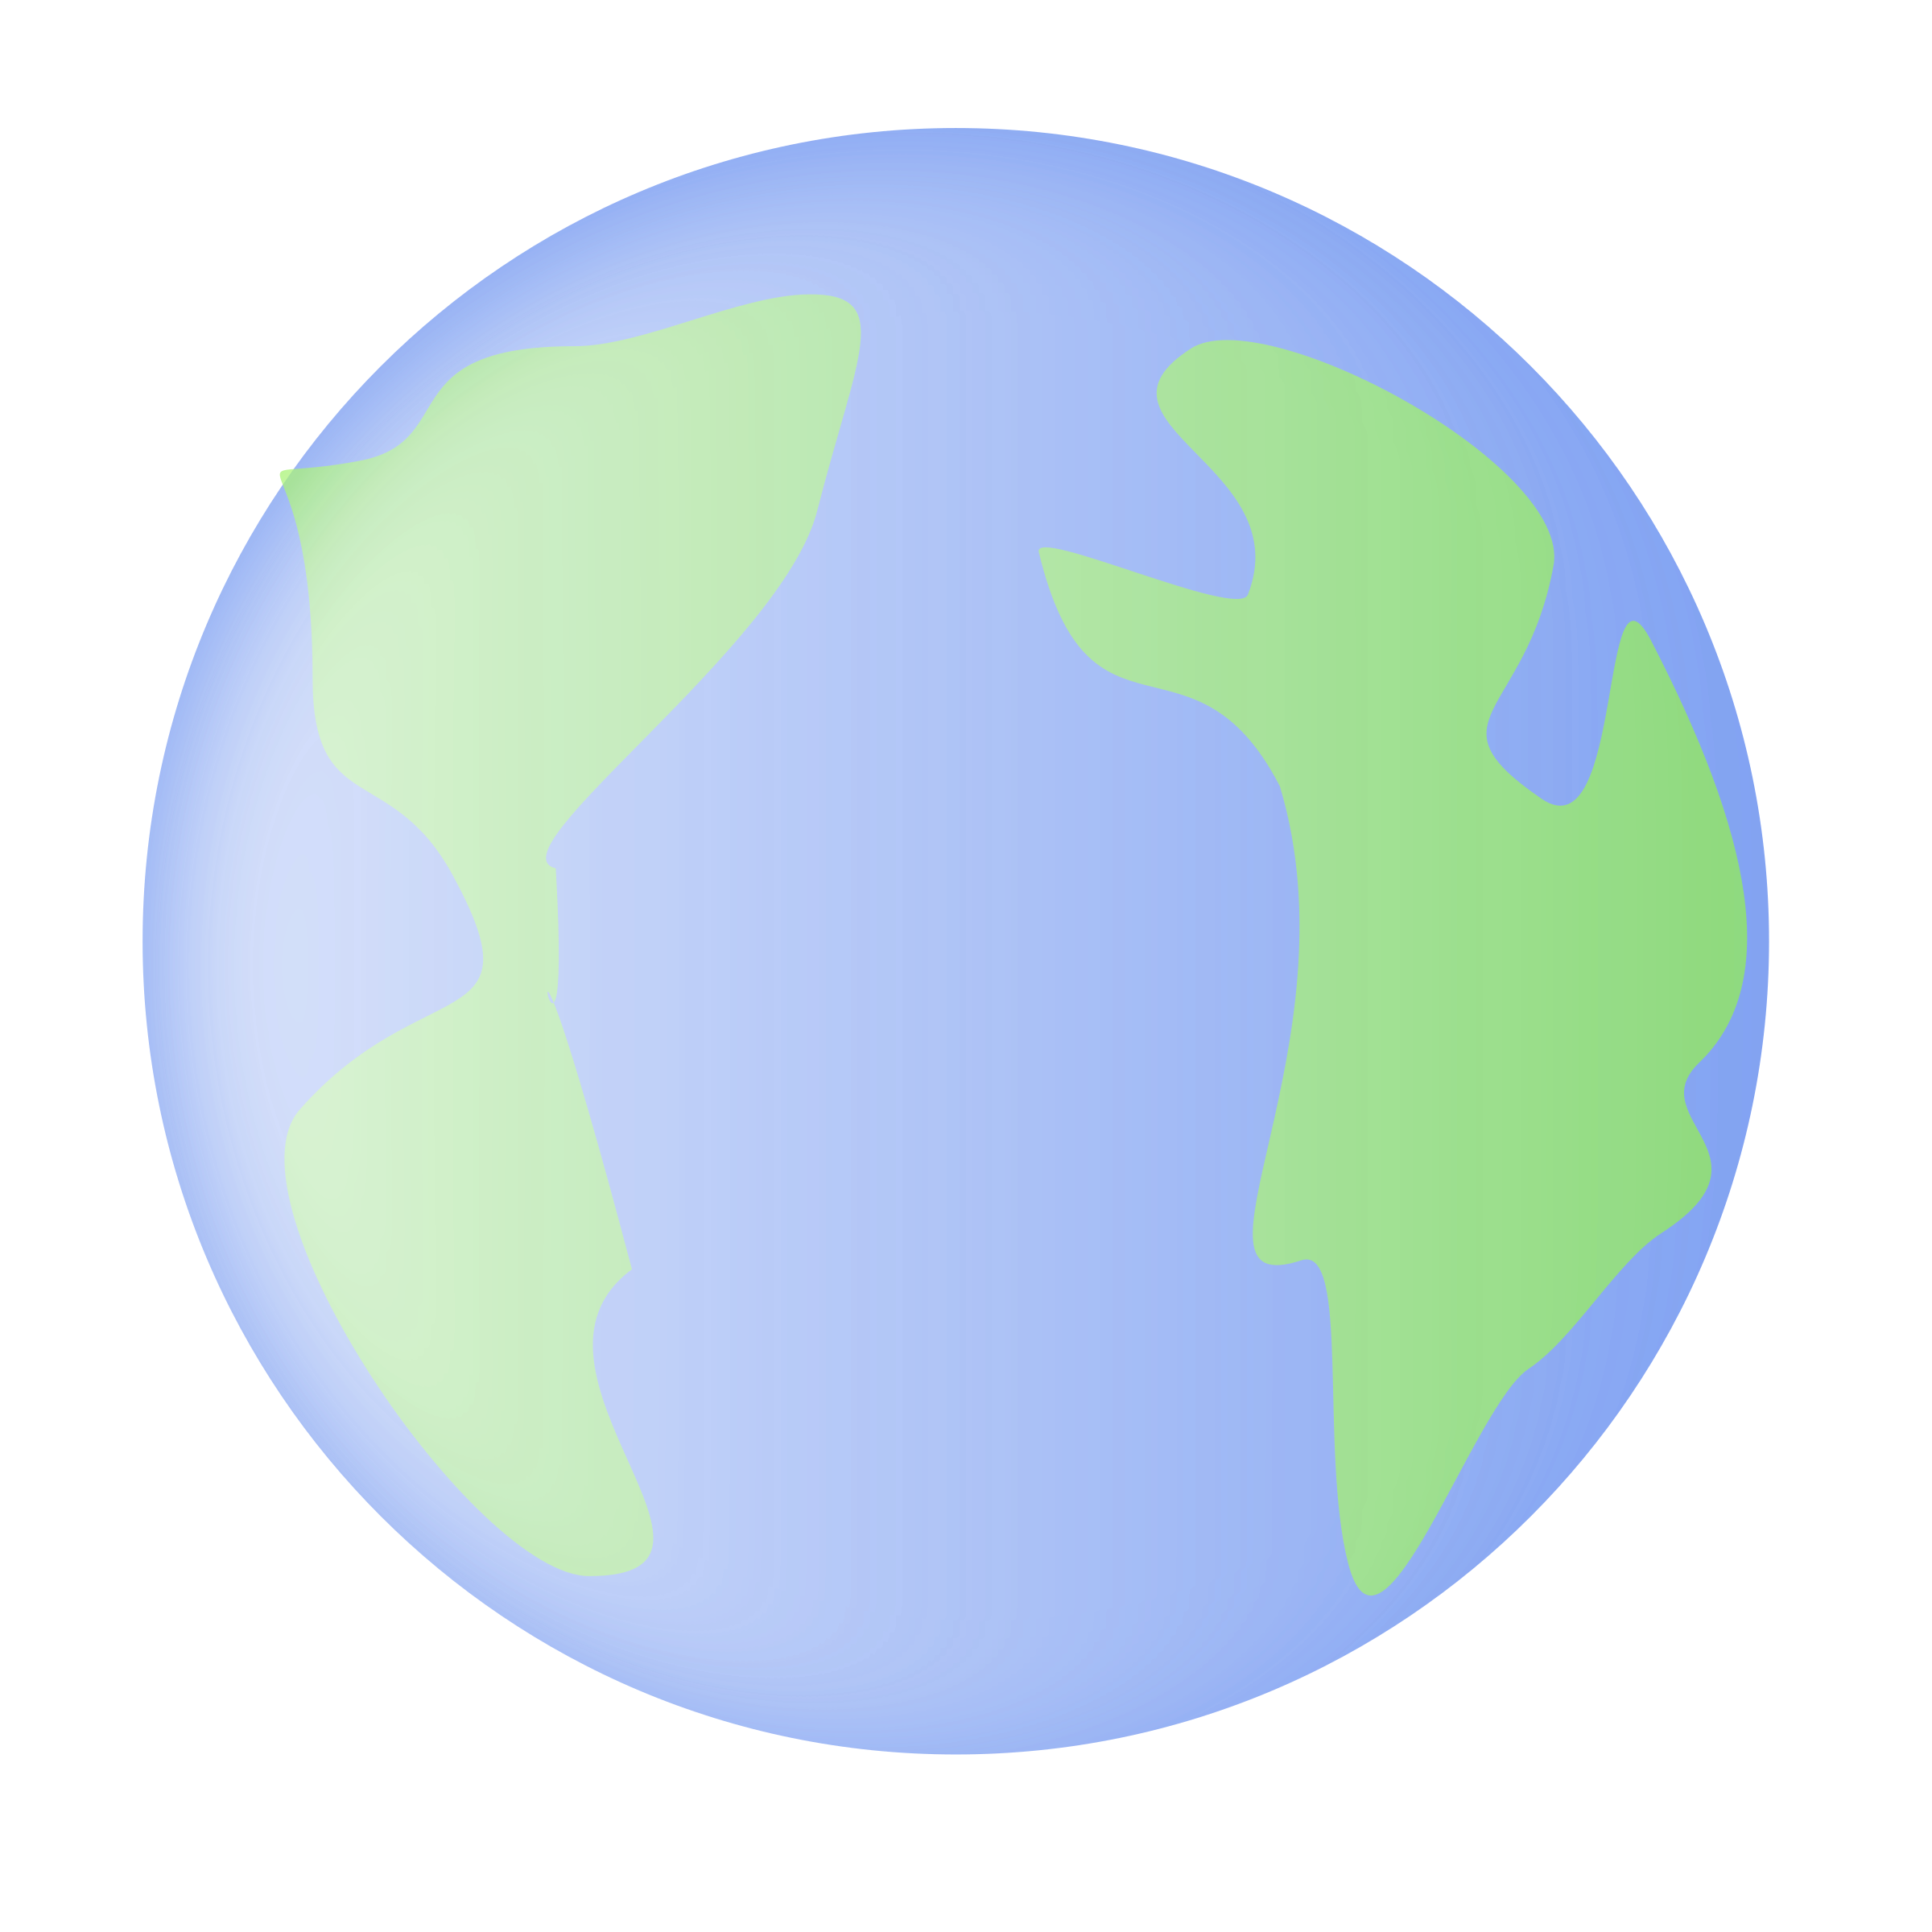 Earth small icon by Ramiras